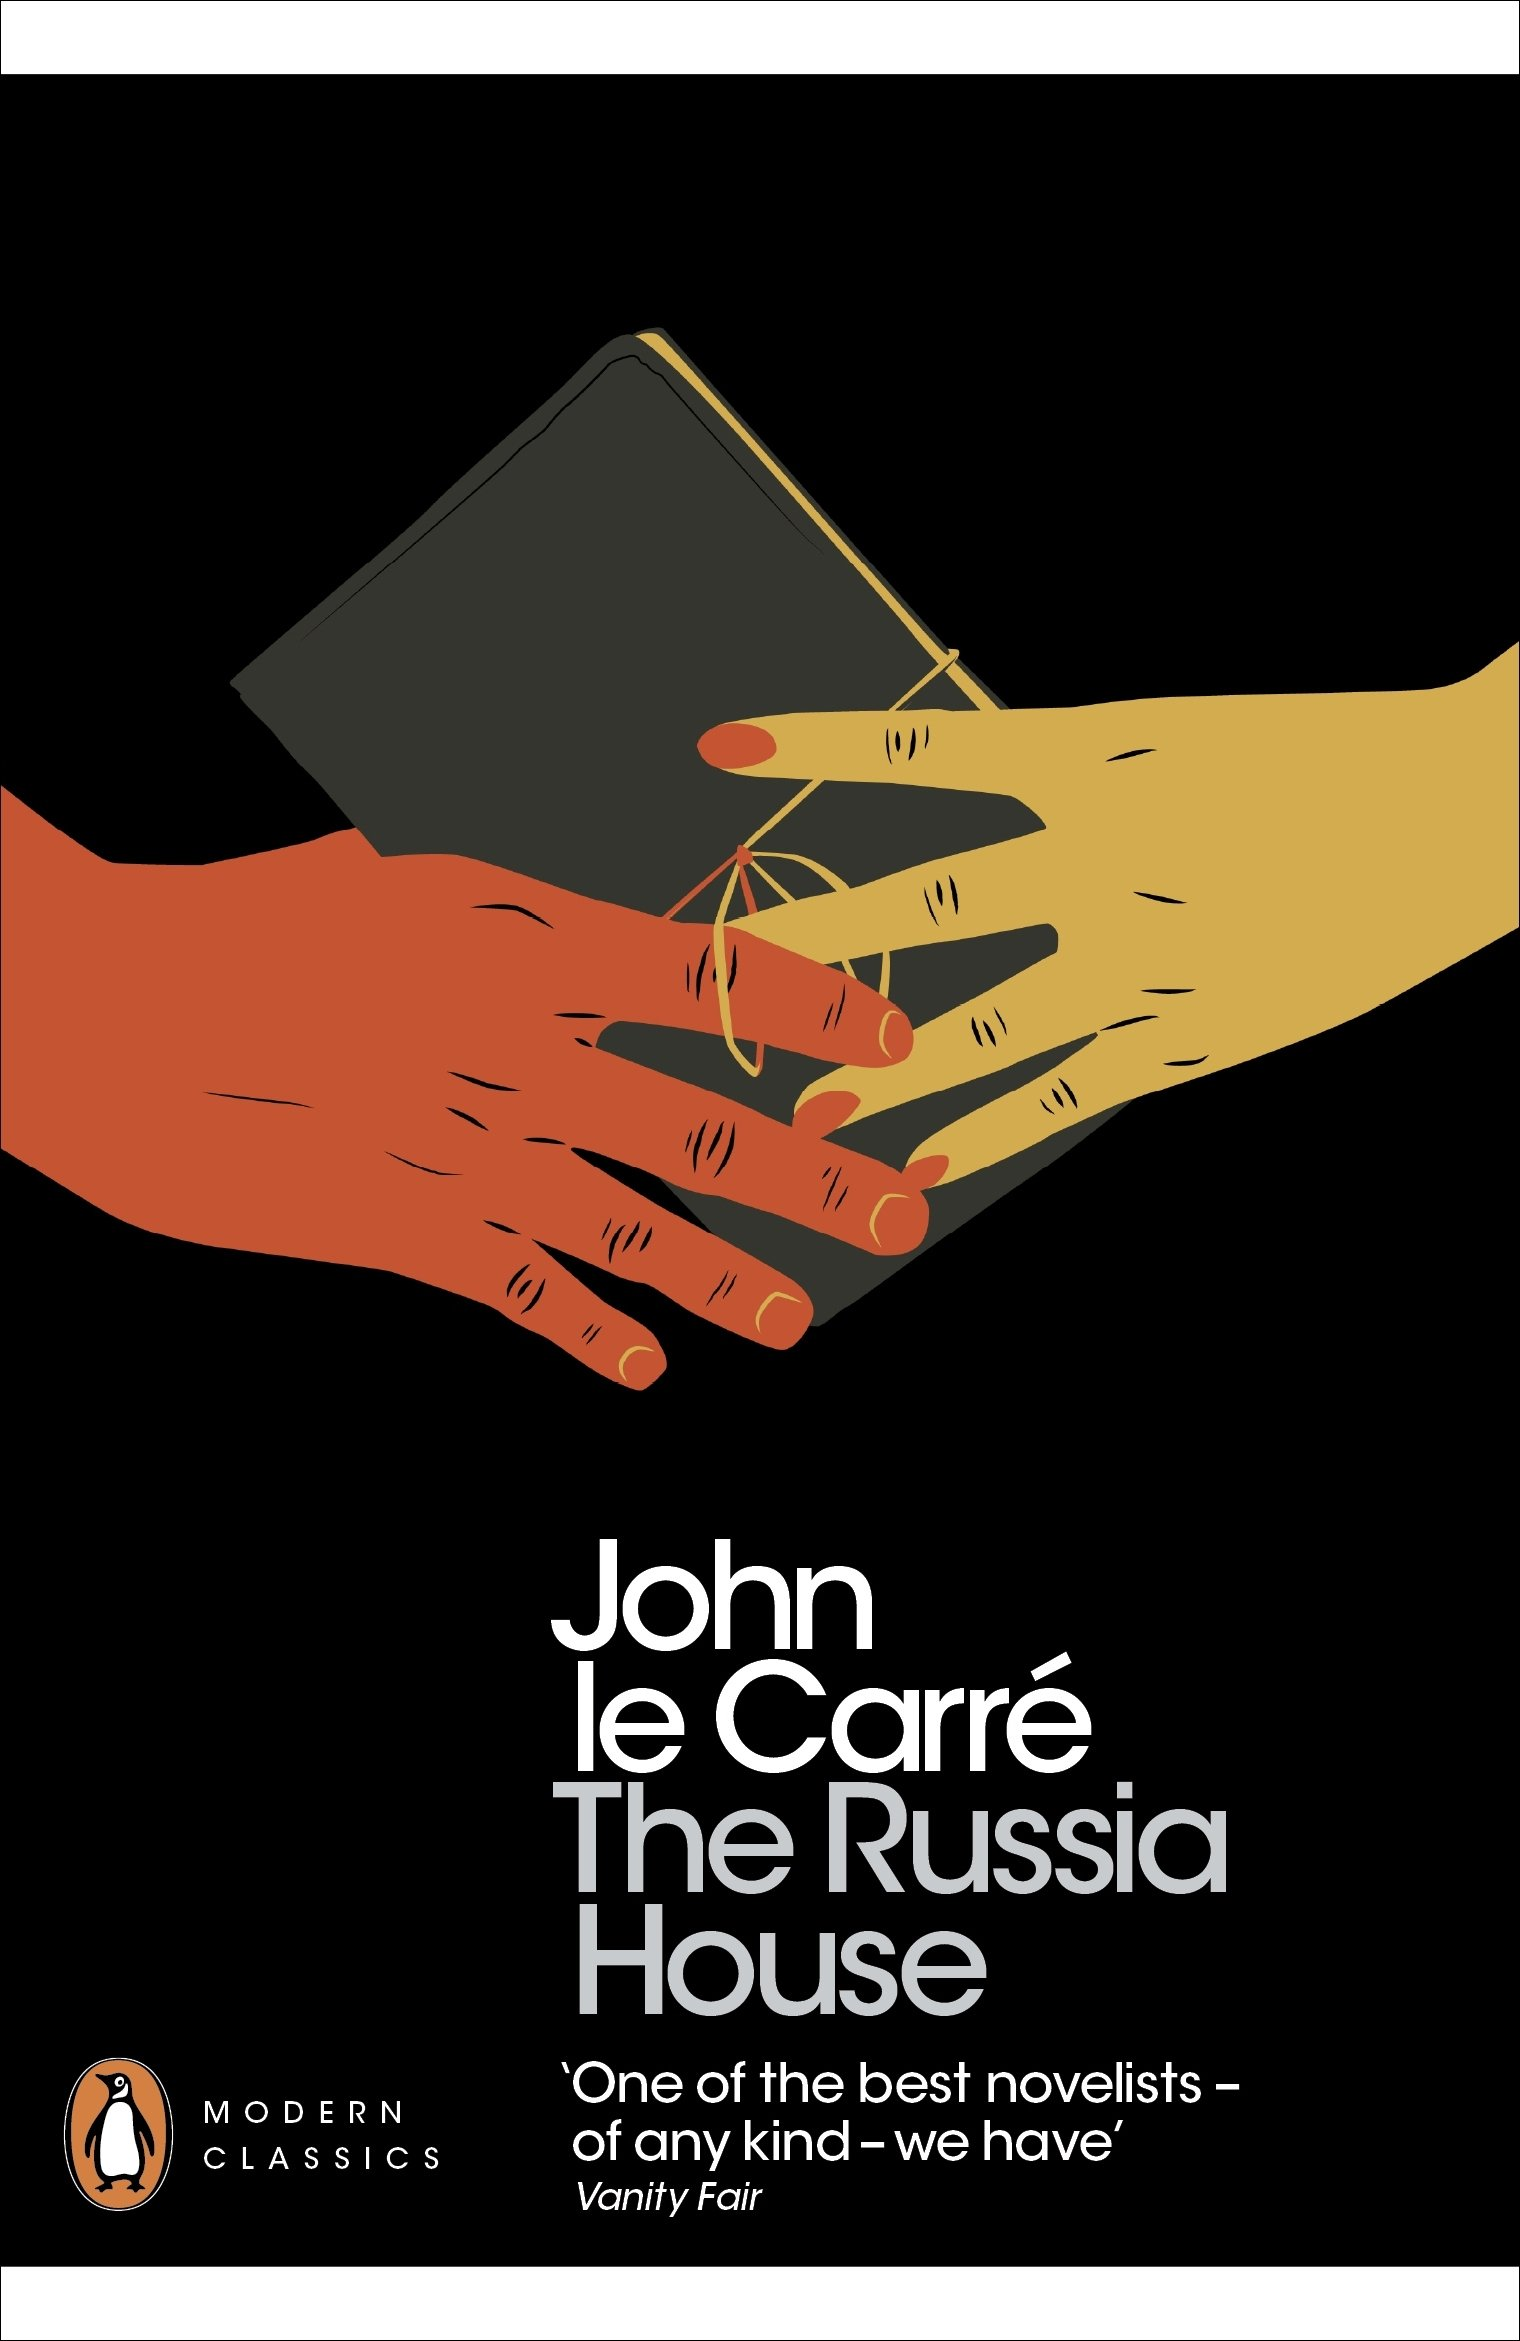 The Russia House (Penguin Modern Classics) Paperback – 26 May 2011